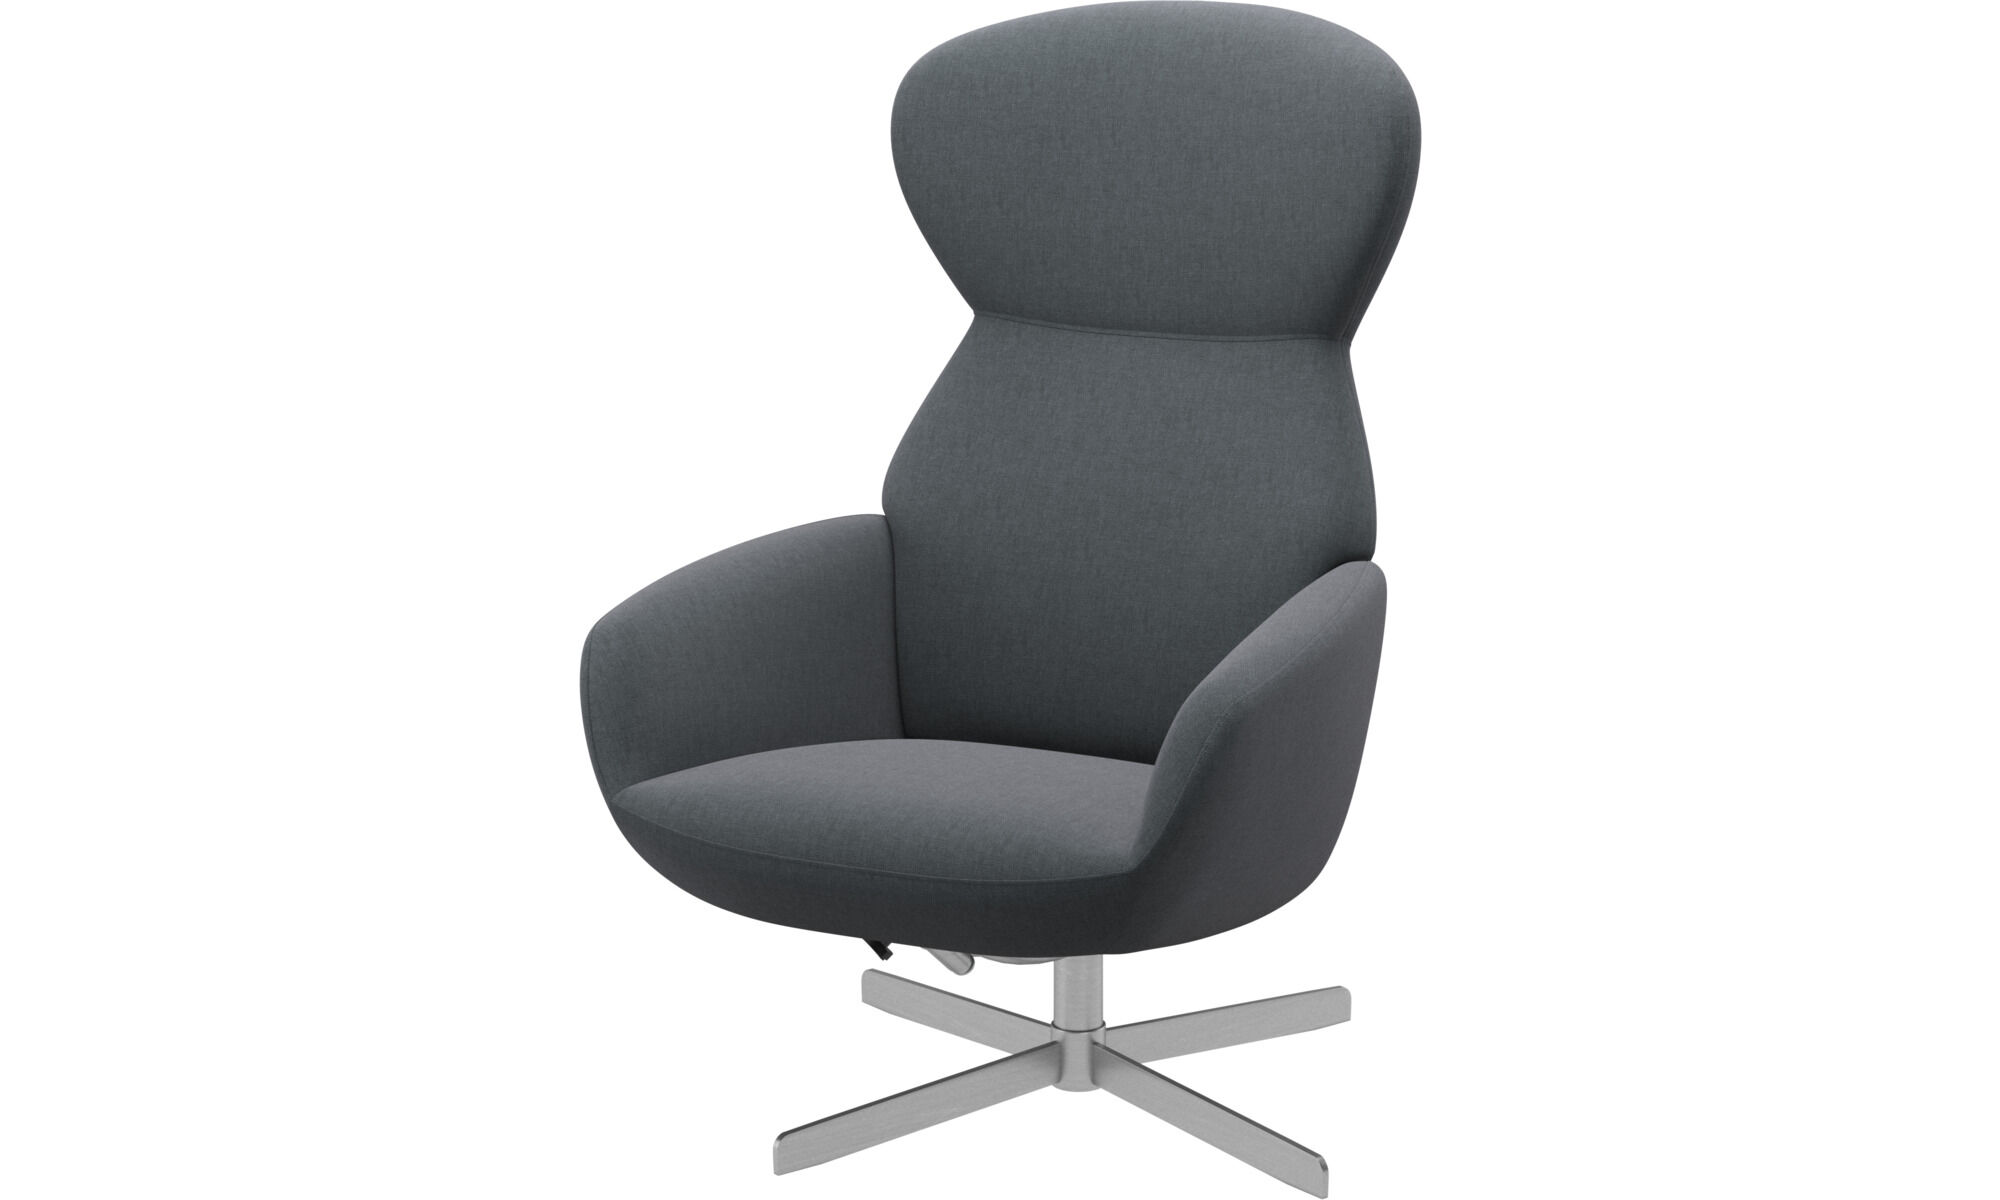 Athena Chair with reclining back function and swivel base. Available October.